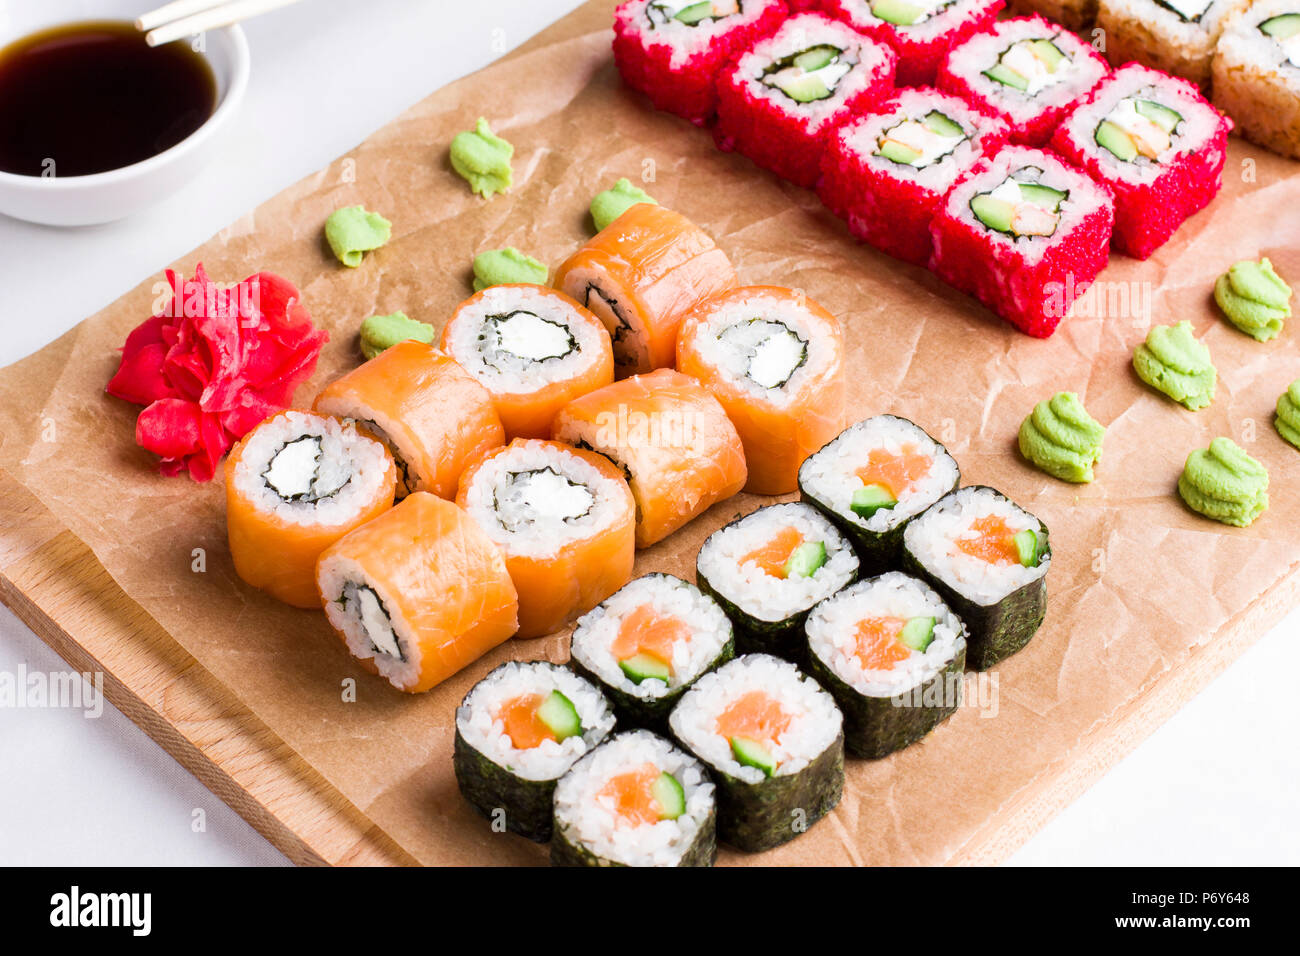 Set Of Different Types Of Japanese Sushi Rolls On Wooden Board Stock Photo Alamy